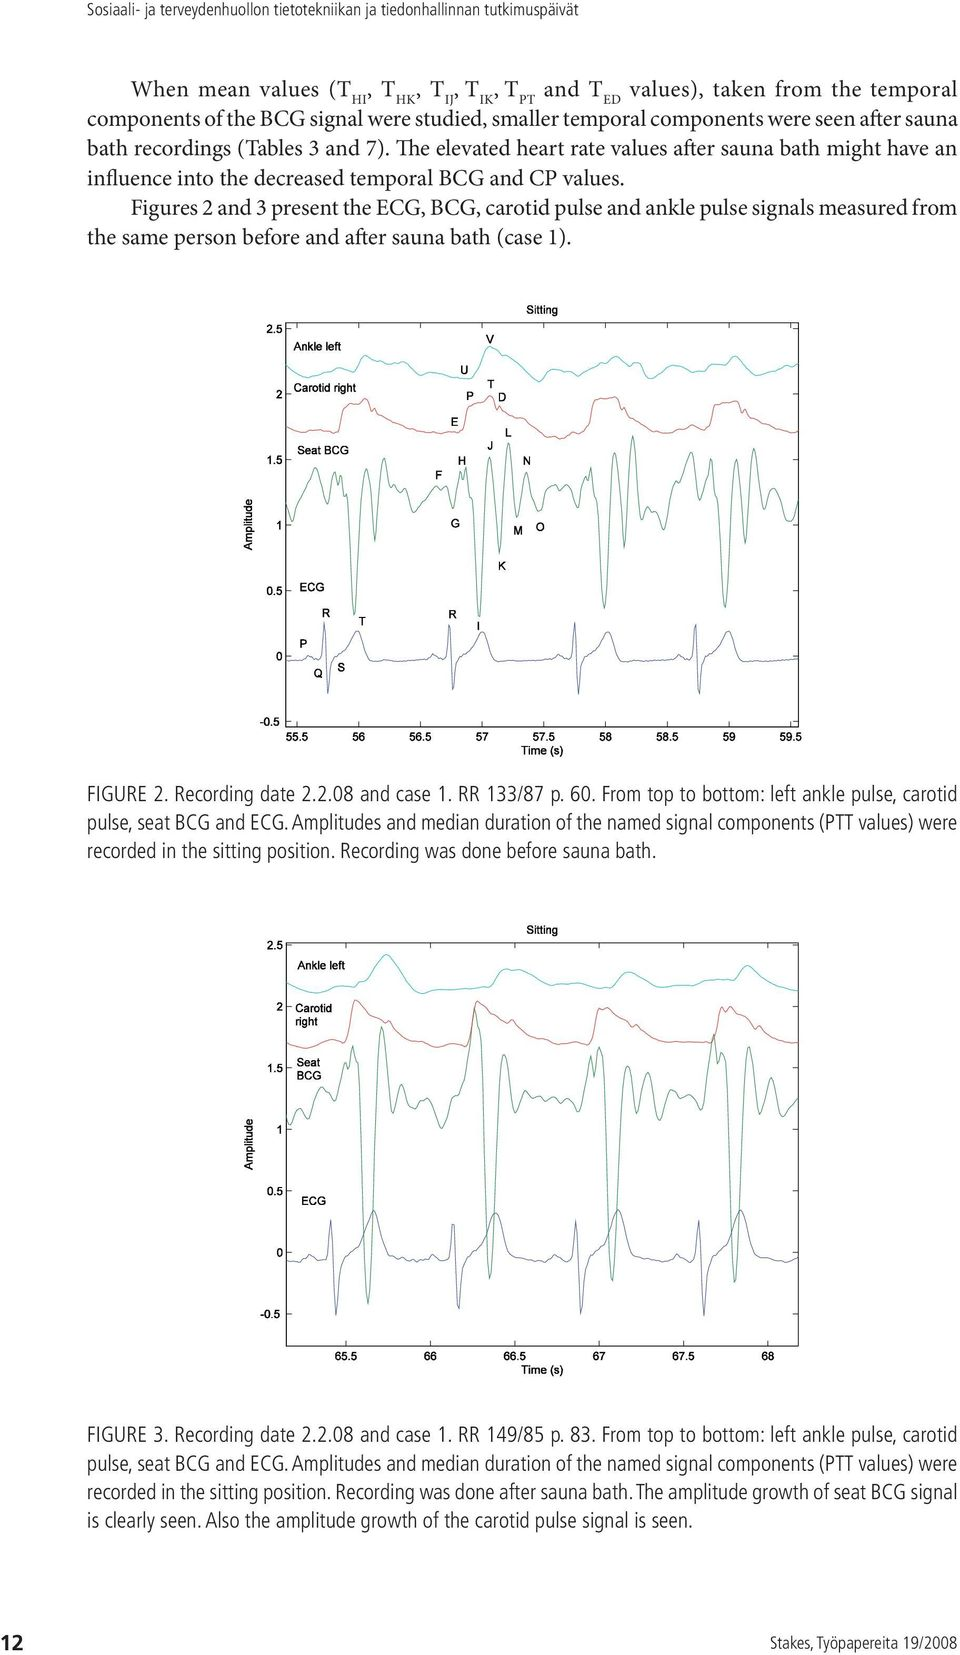 Figures 2 and 3 present the ECG, BCG, carotid pulse and ankle pulse signals measured from the same person before and after sauna bath (case 1). Figure 2. Recording date 2.2.08 and case 1. RR 133/87 p.